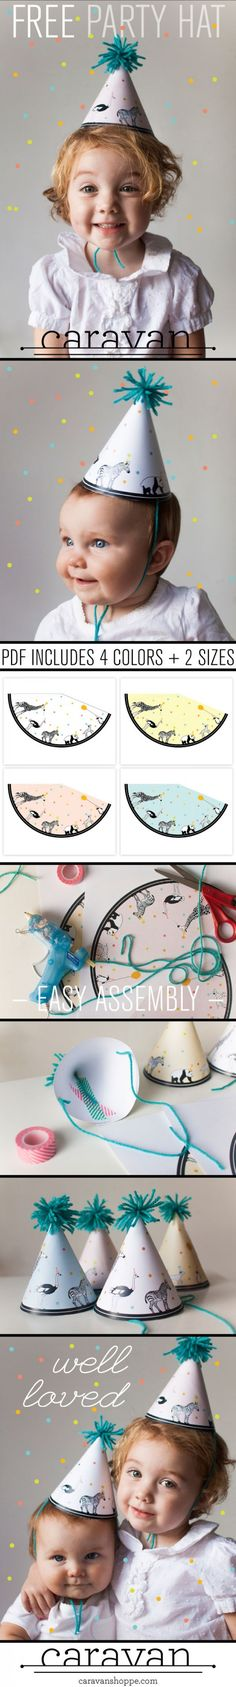 FREE Printable Party Animal hats from caravanshoppe.com